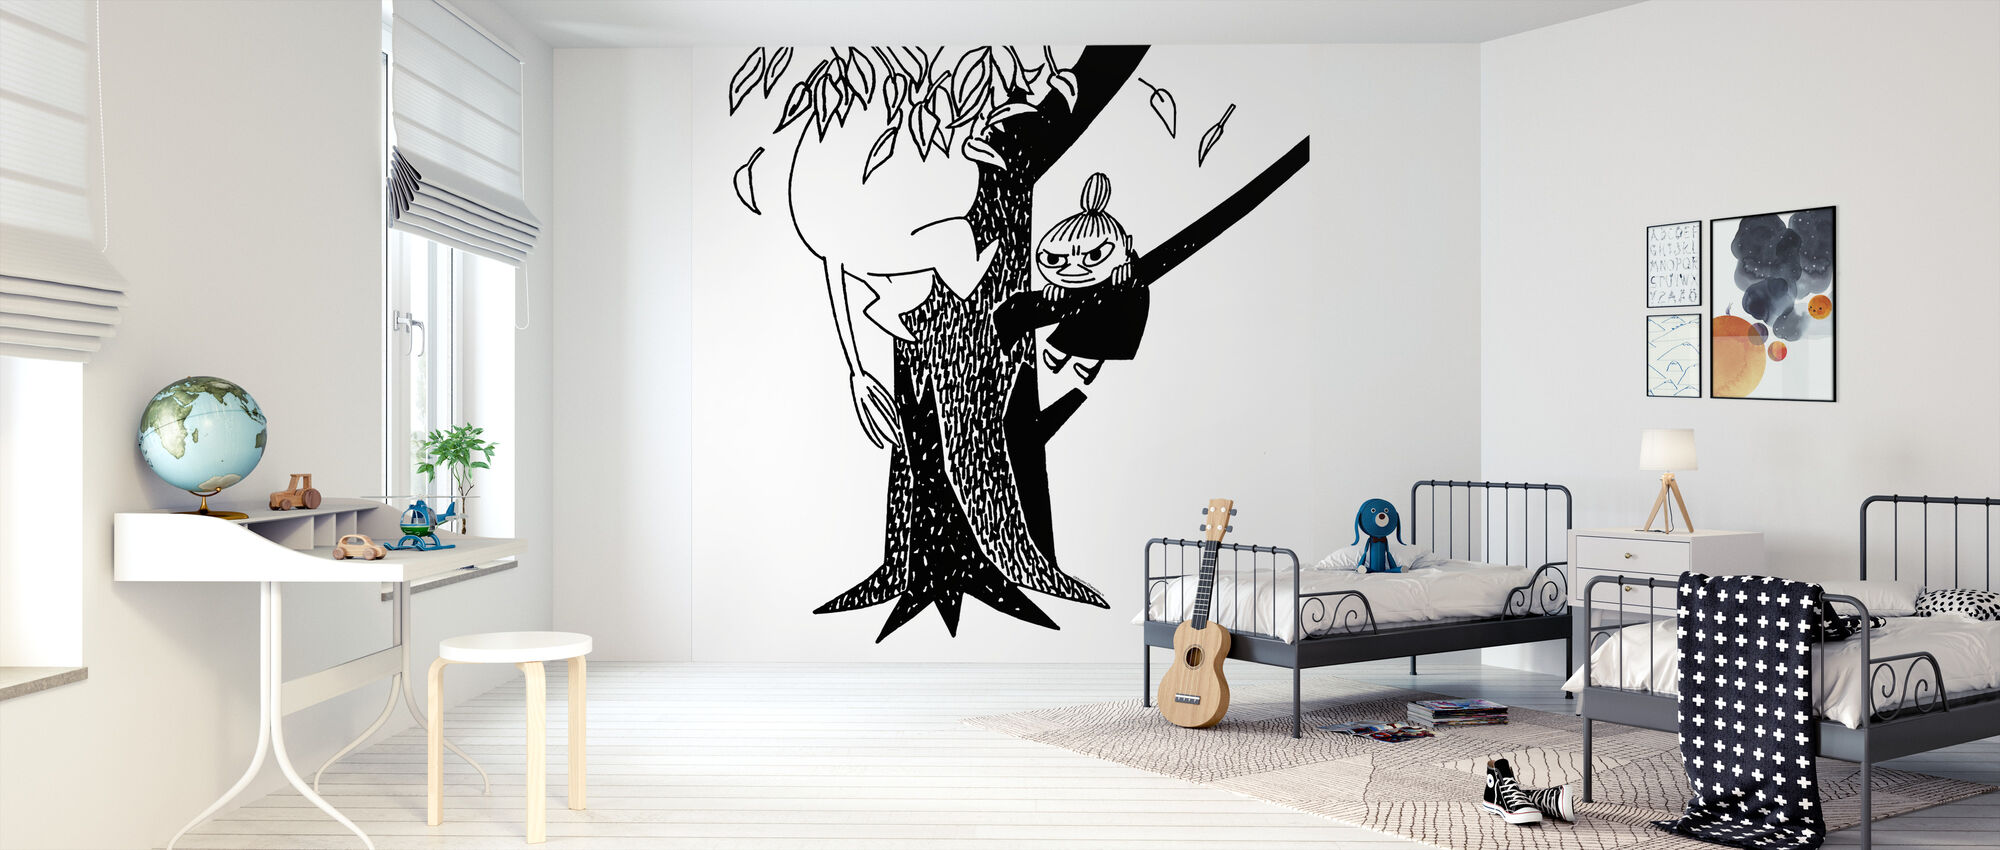 Moomin and Little My Climbing a Tree - Wallpaper - Kids Room